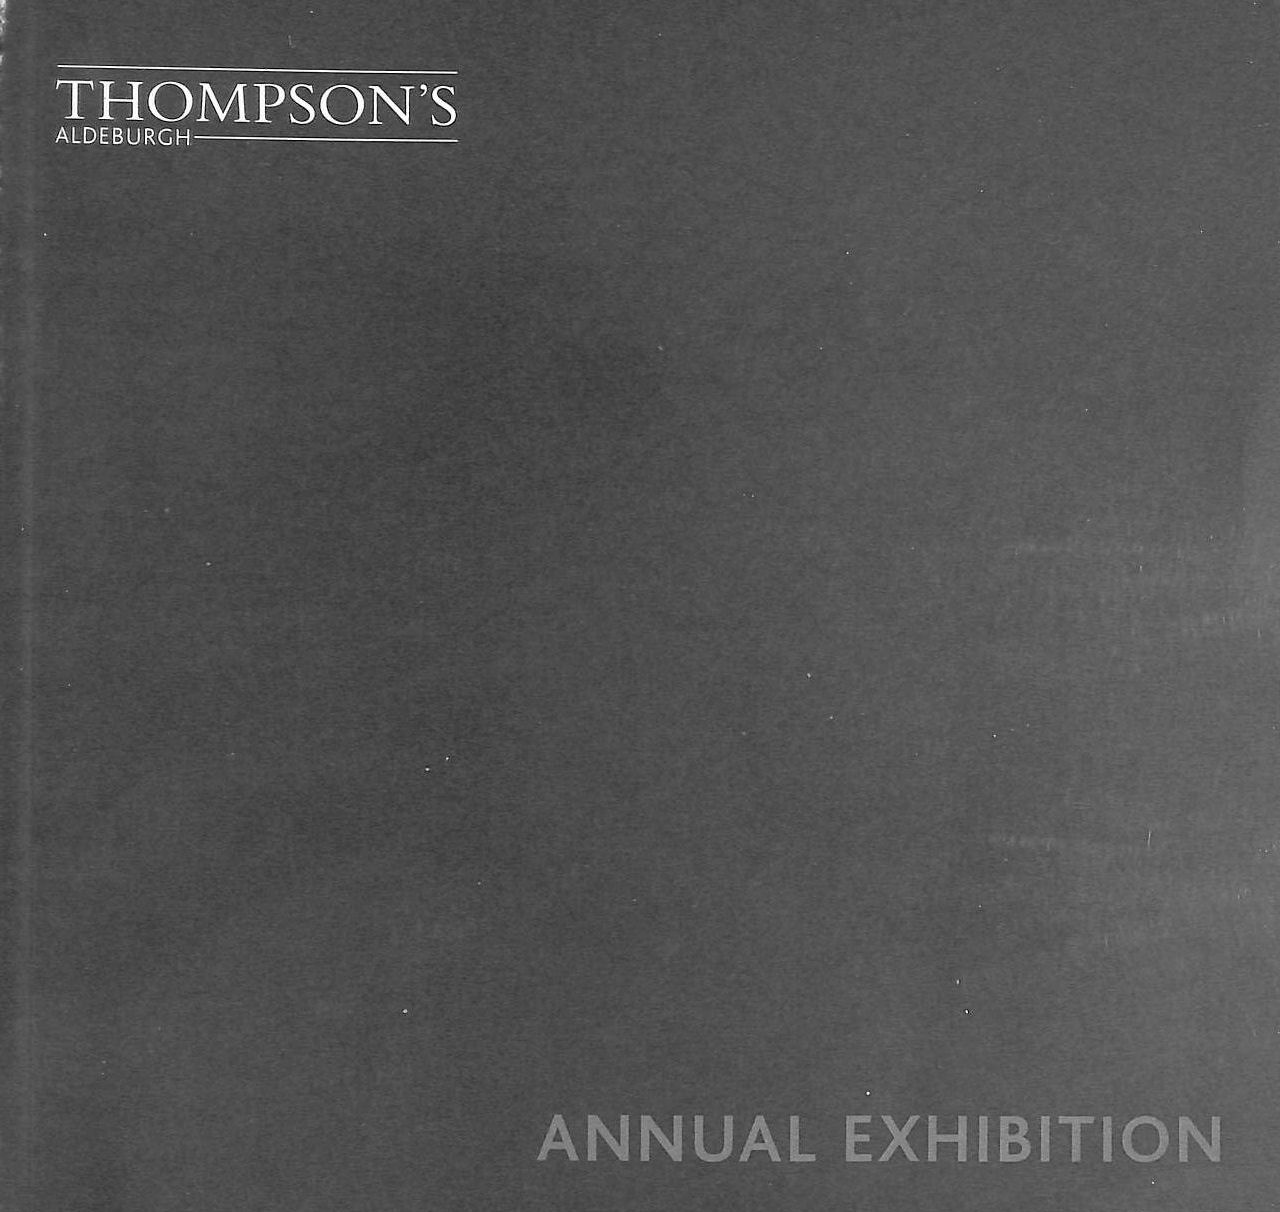 Image for Annual Exhibition 2008